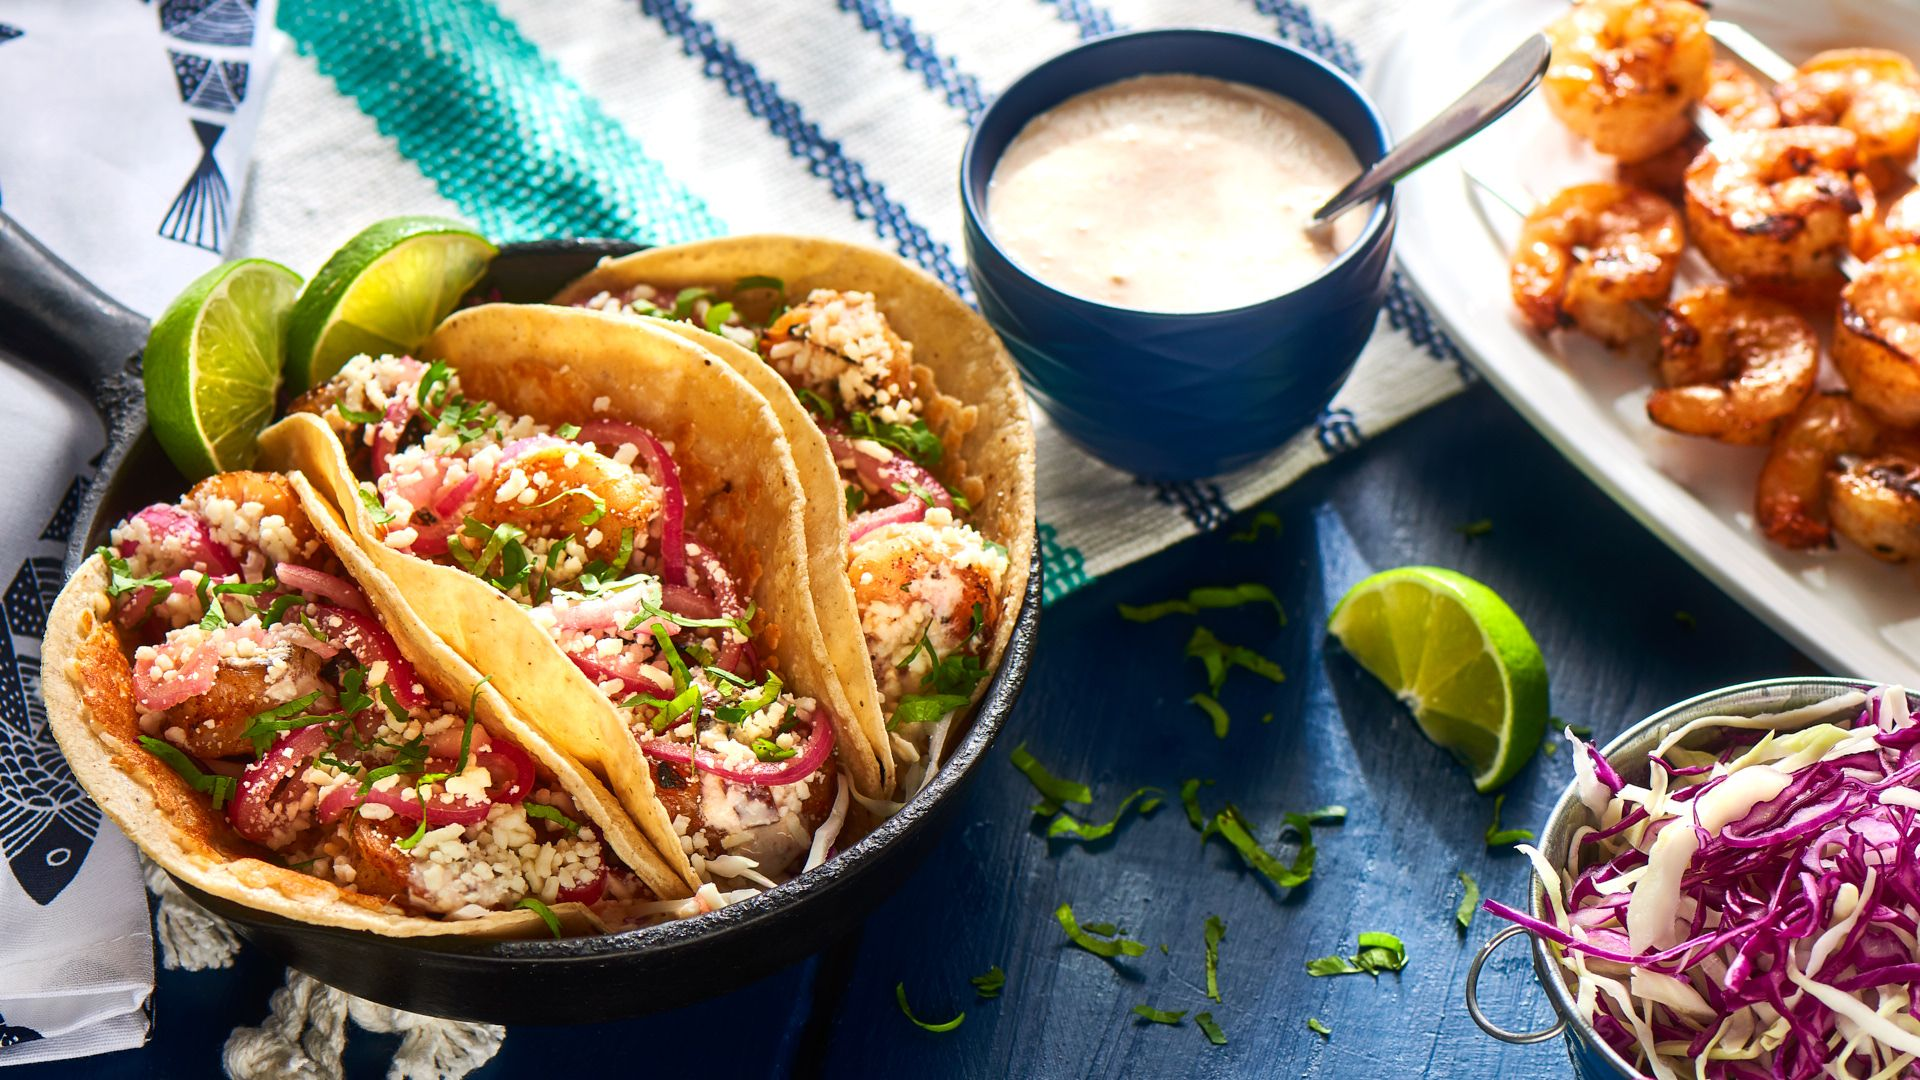 Capture the taste of summer time with Tequila Grilled Shrimp Tacos Flame grilled shrimp are enhanced with chipotle tequila cream sauce, the tangy crunch of pickled onions, and delicious Sierra® Cotija cheese. #LoveMyQueso